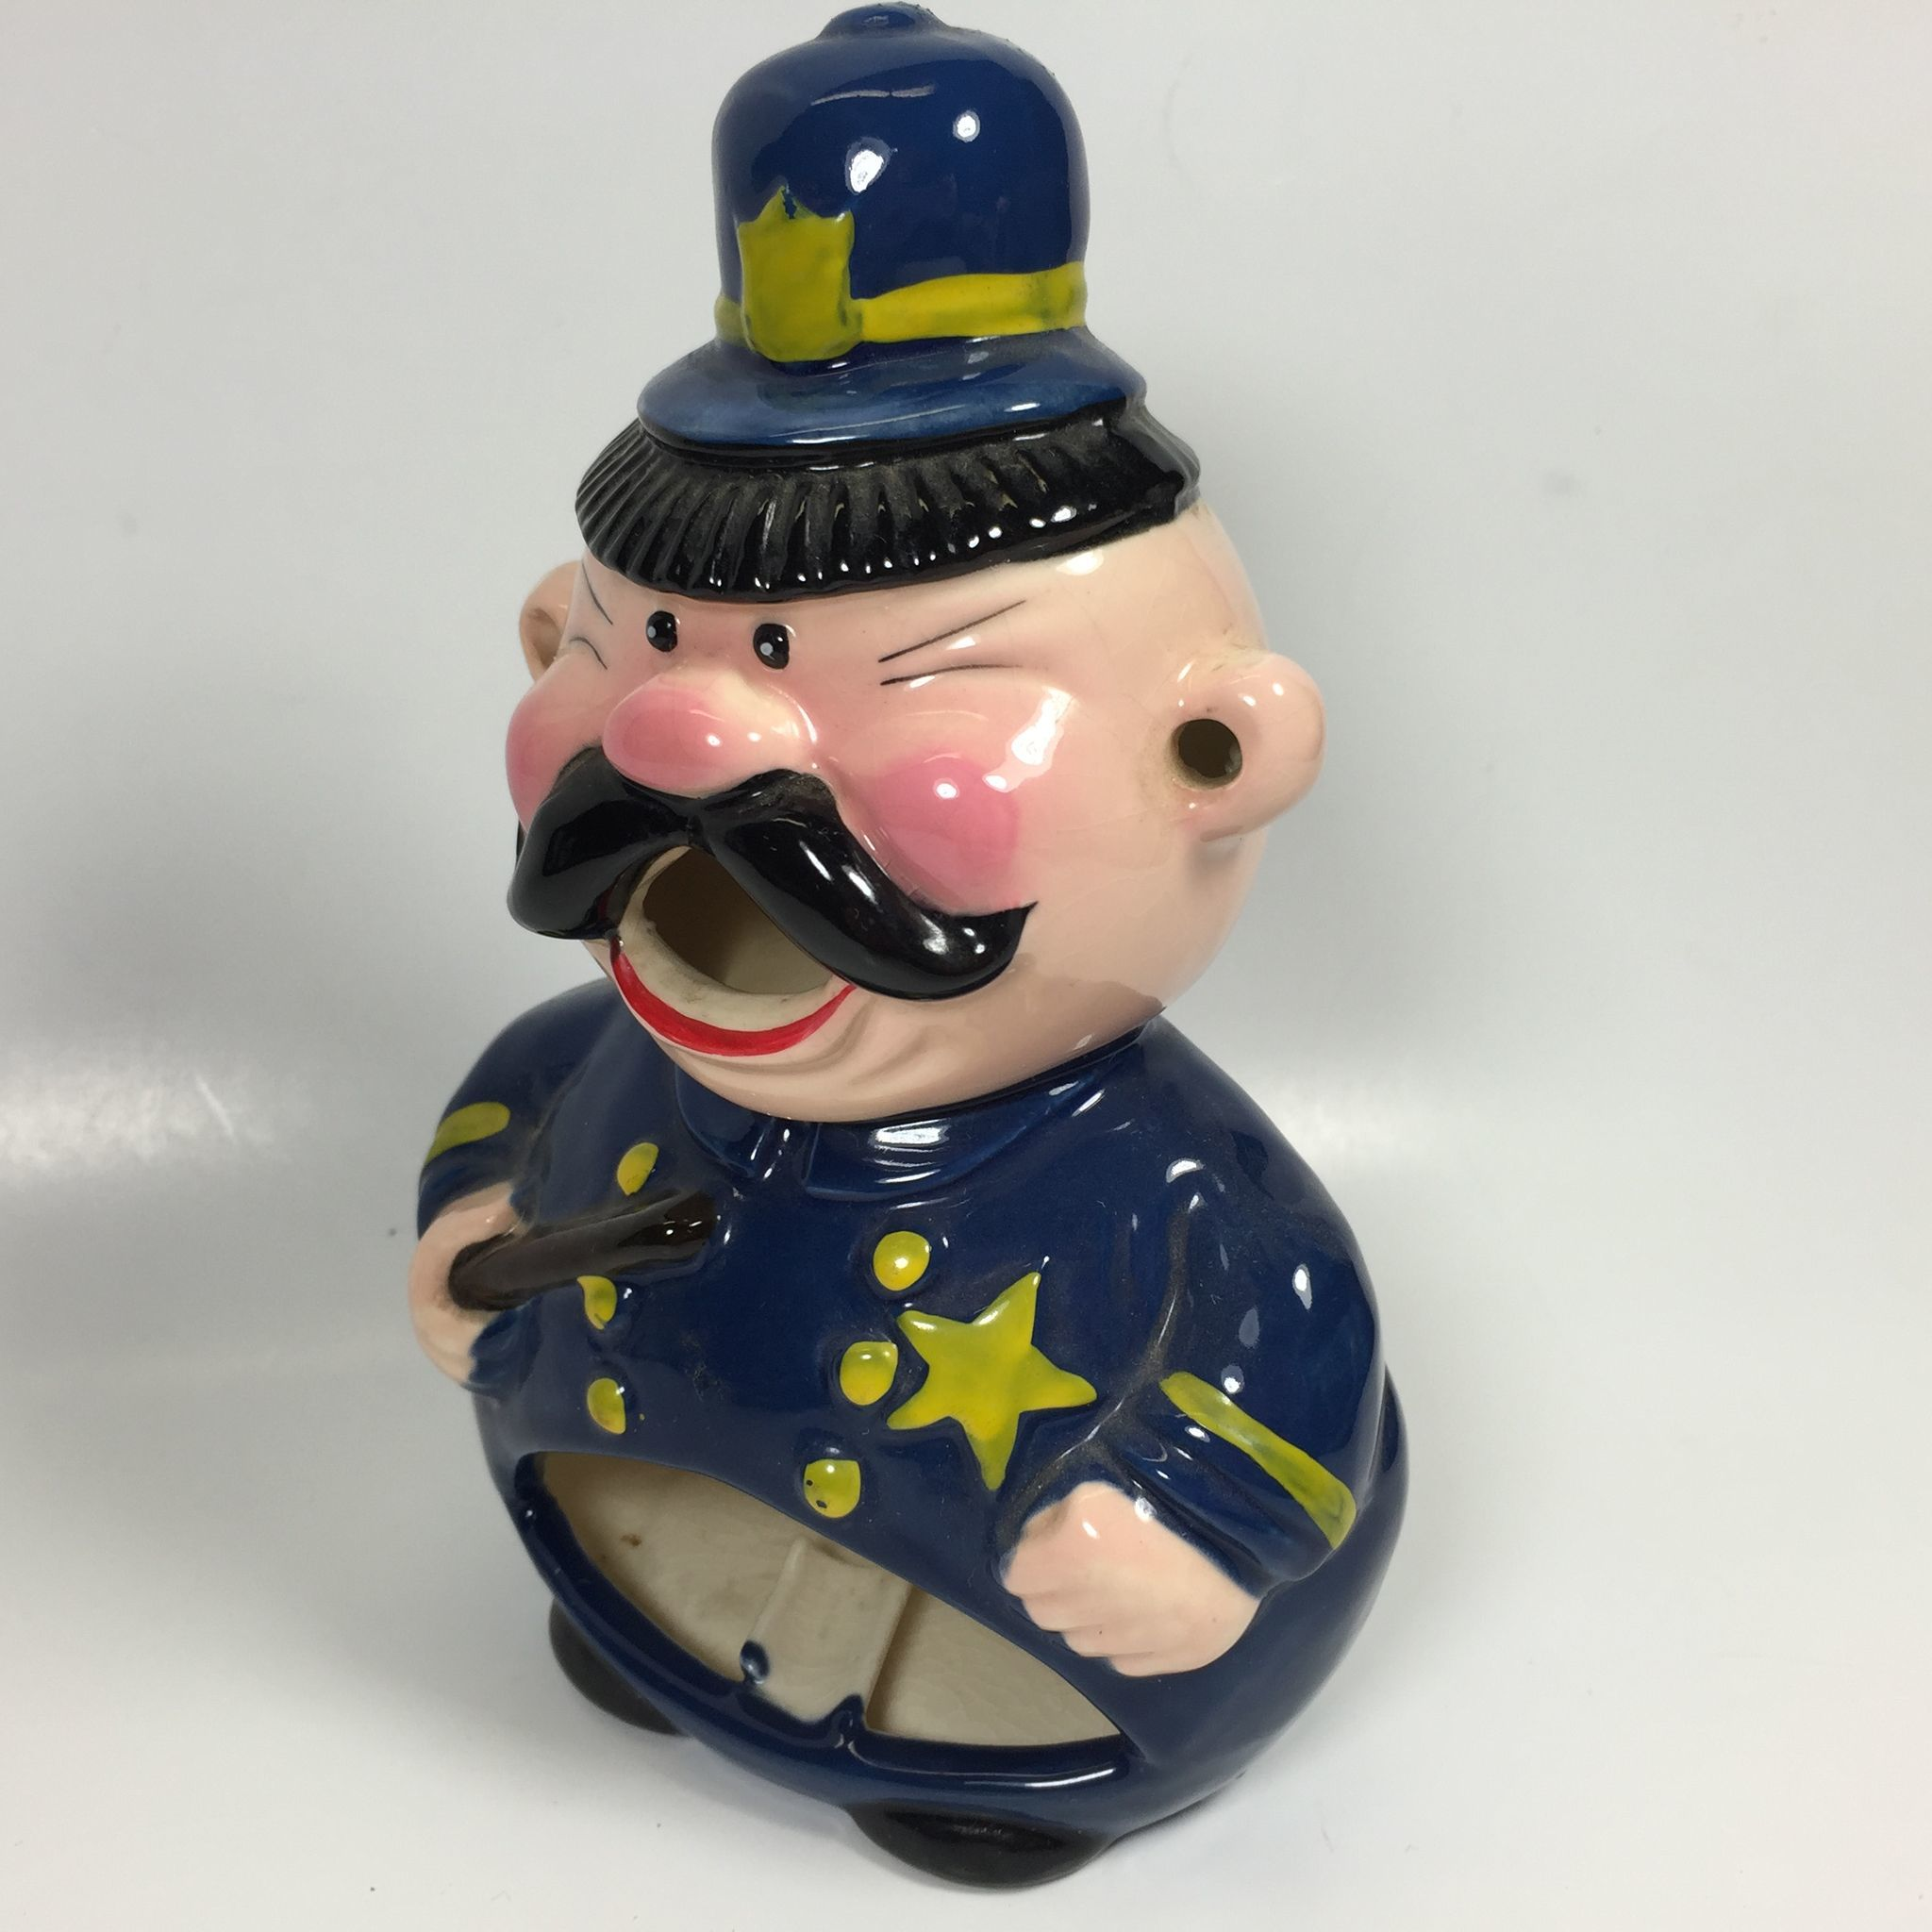 Vintage Police Officer Smoker Ashtray From Headsupvintage